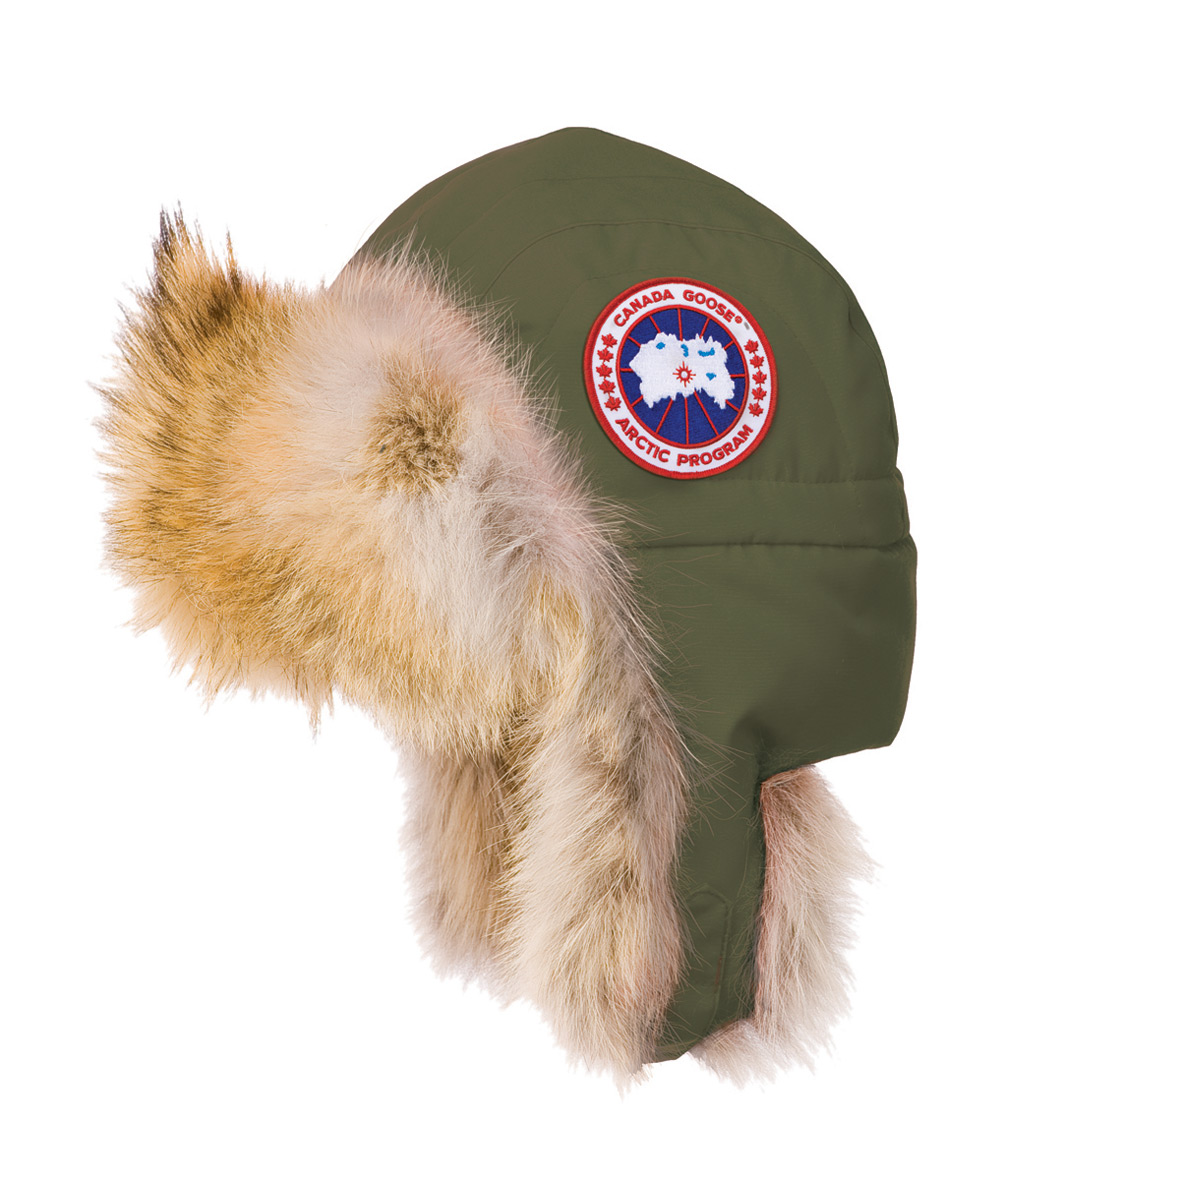 Canada Goose Unisex Aviator Hat MILITARY GREEN For Men